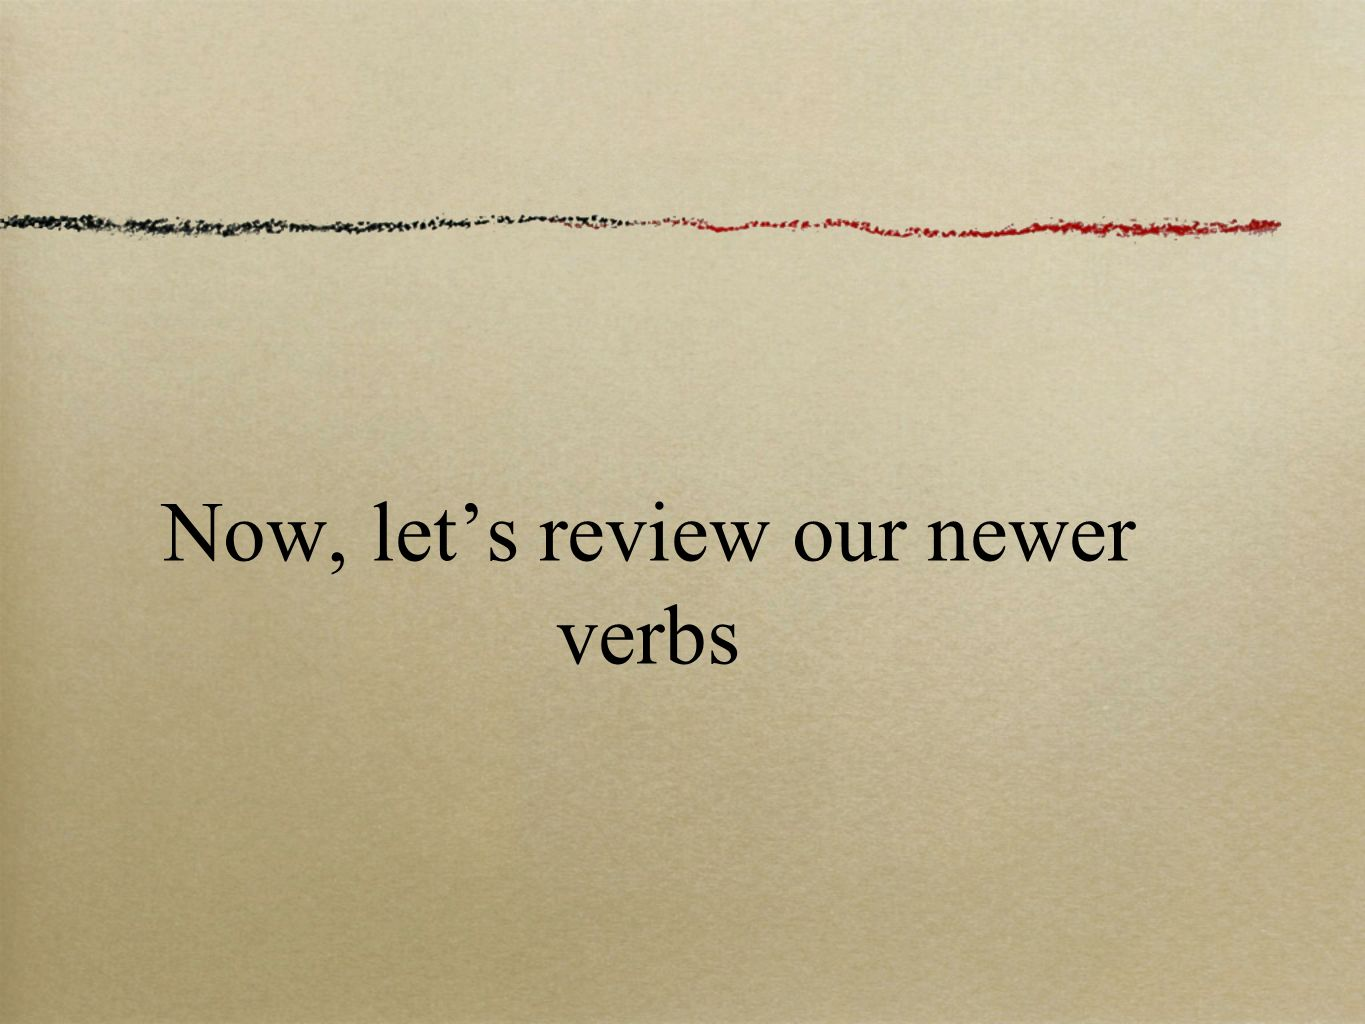 You have to: